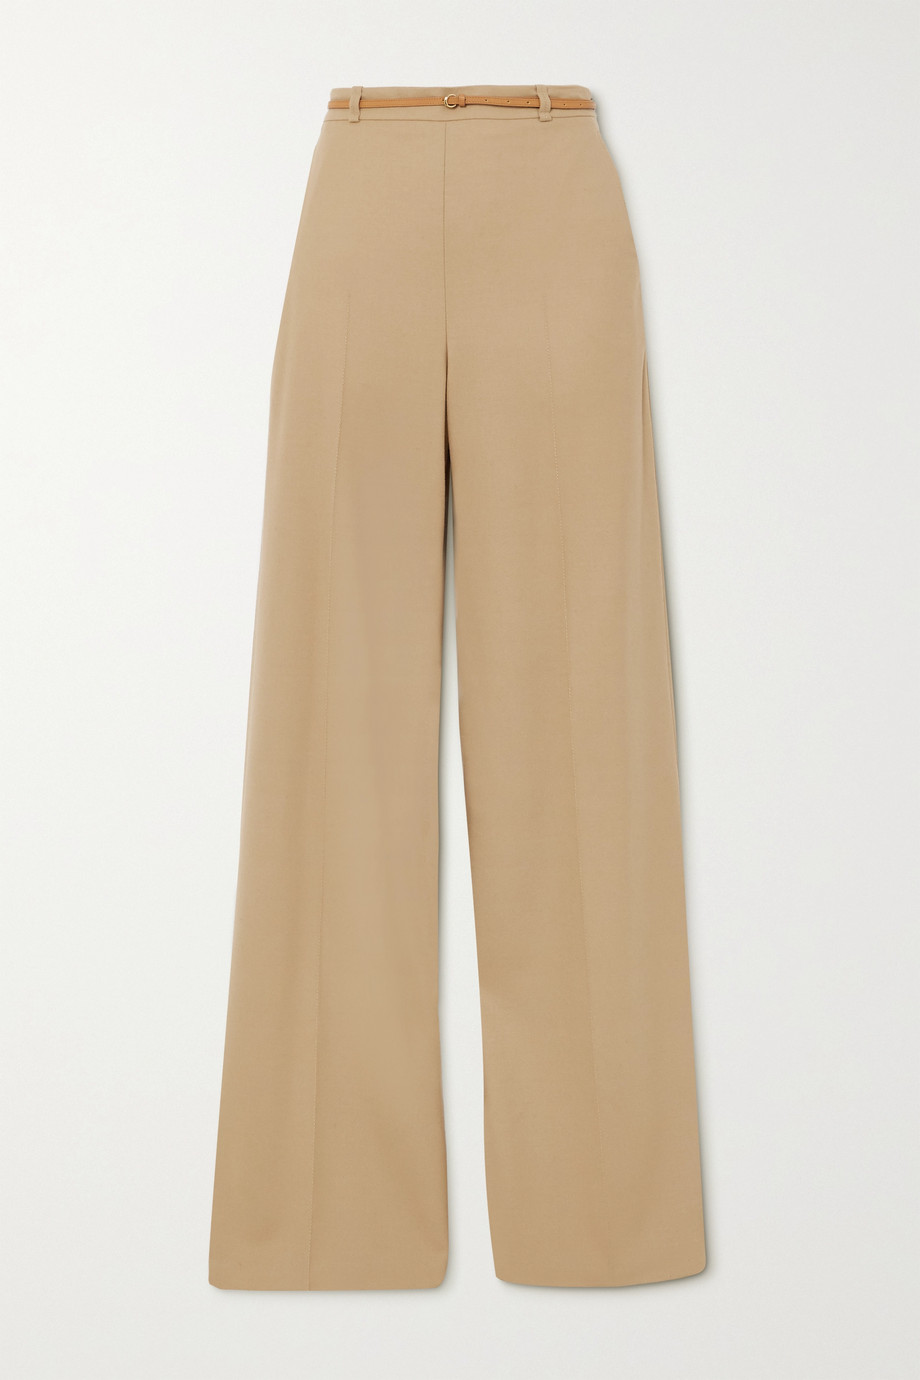 Chloé Belted twill wide-leg pants